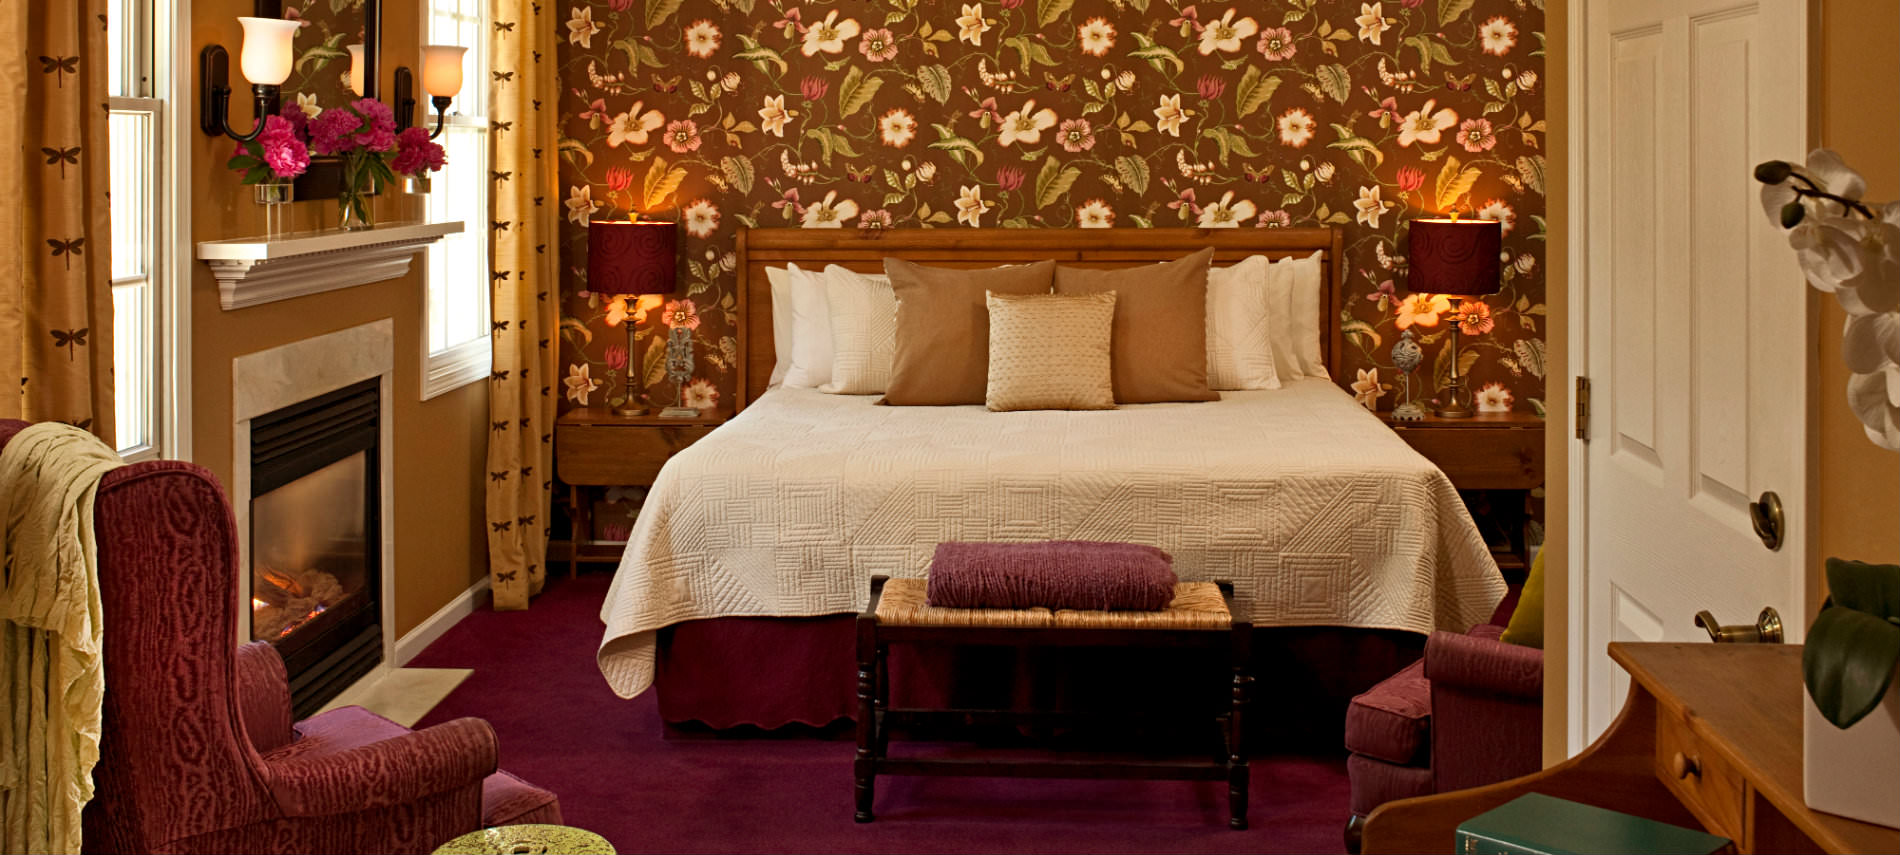 King bed with cream bedspread and pillows, brown walls and flowered wallpaper, fireplace, burgundy chair and carpet, stands with lamps.